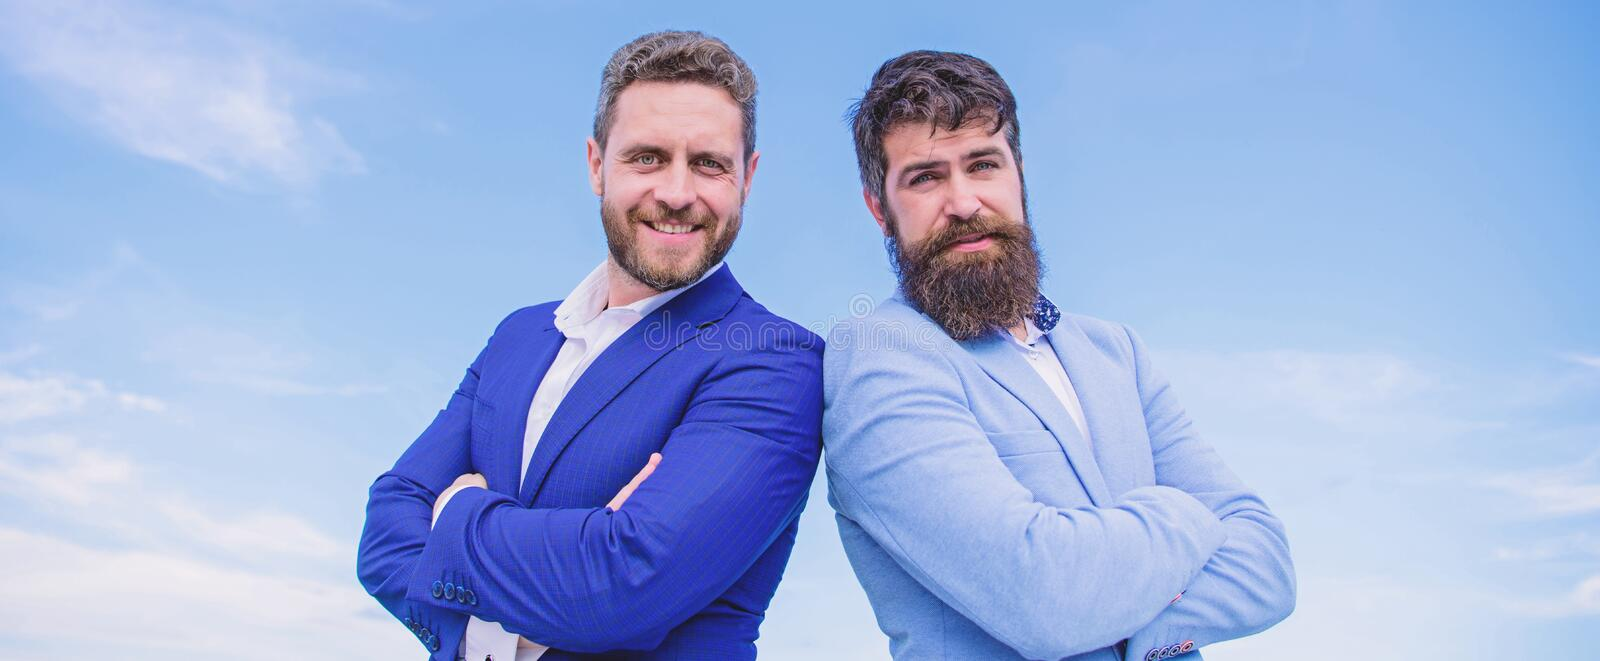 Perfect in every detail. Business people concept. Bearded business people posing confidently. Business men stand blue. Sky background. Well groomed appearance stock images